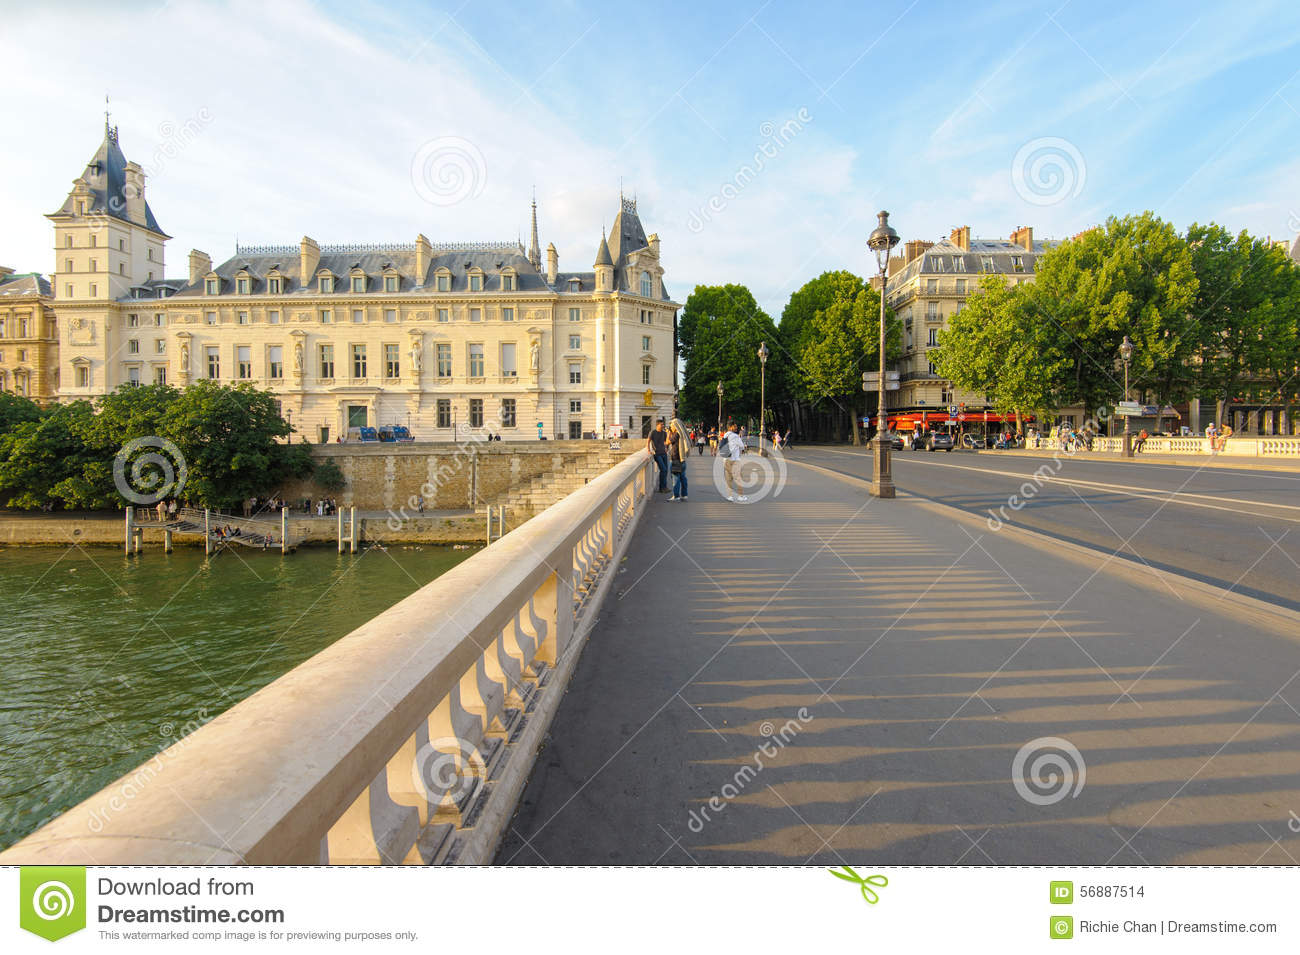 Flodstrand av Seine River i Paris